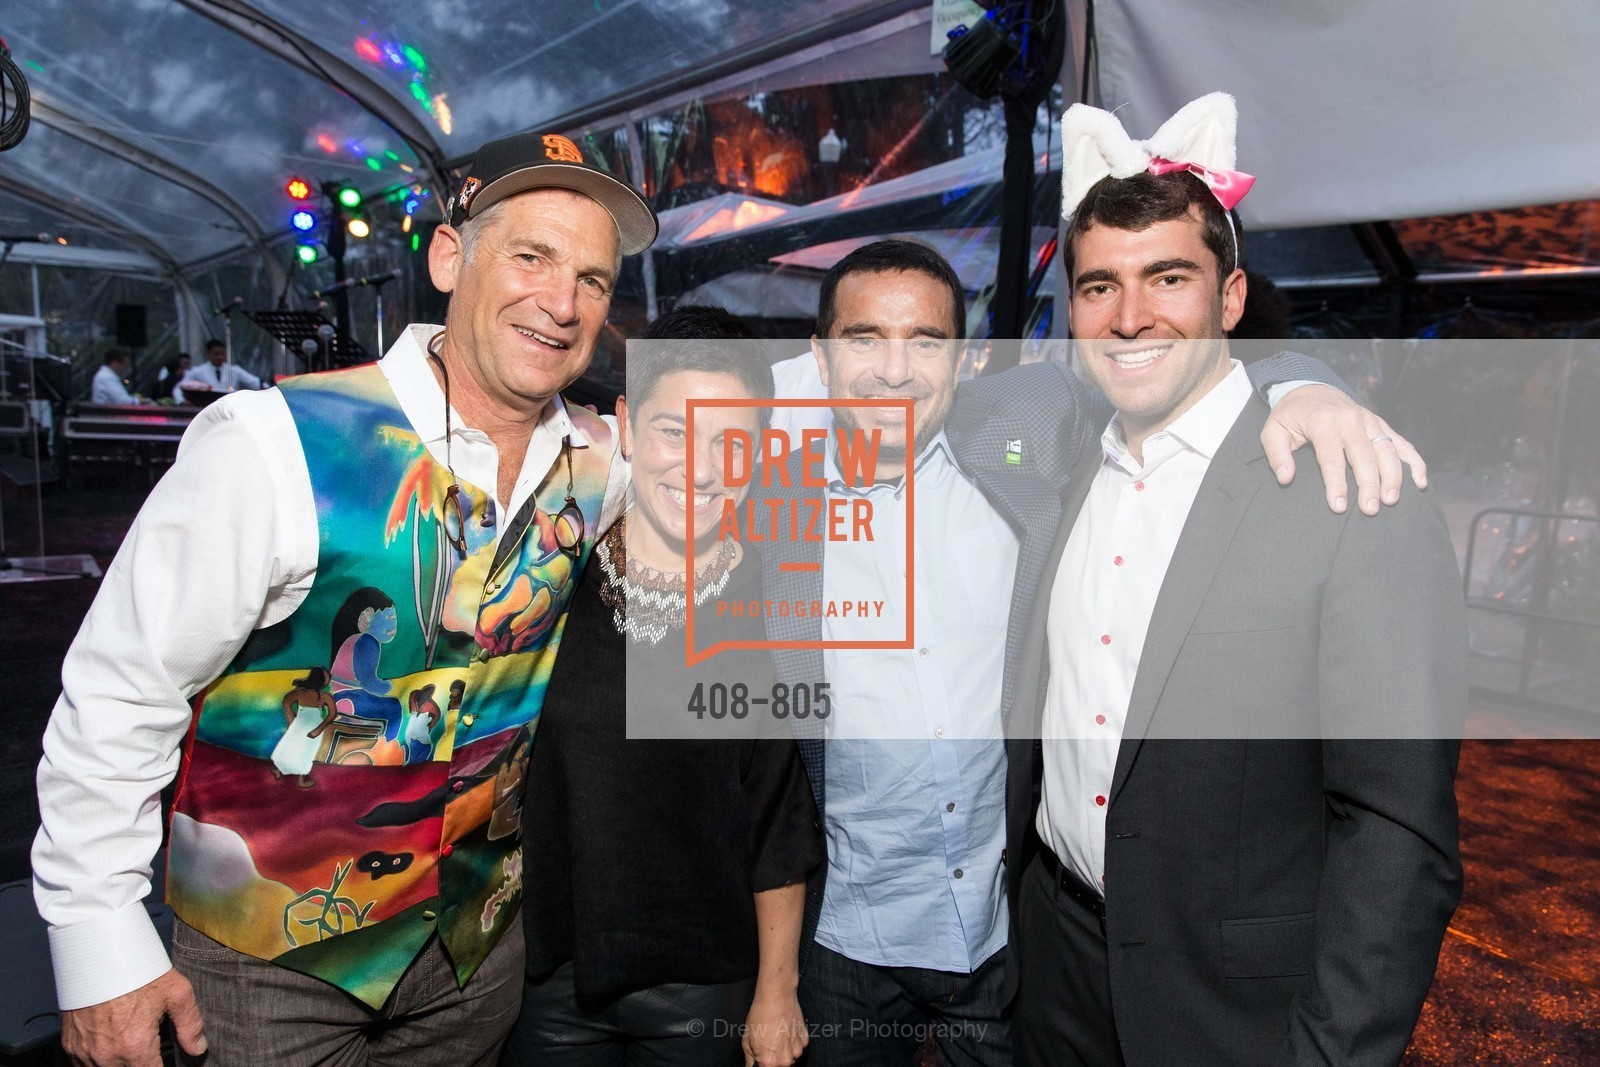 Donny Friend, Emily Ginsburg, Phil Ginsburg, Jason Friend, ZOOFEST 2015, US, April 26th, 2015,Drew Altizer, Drew Altizer Photography, full-service agency, private events, San Francisco photographer, photographer california